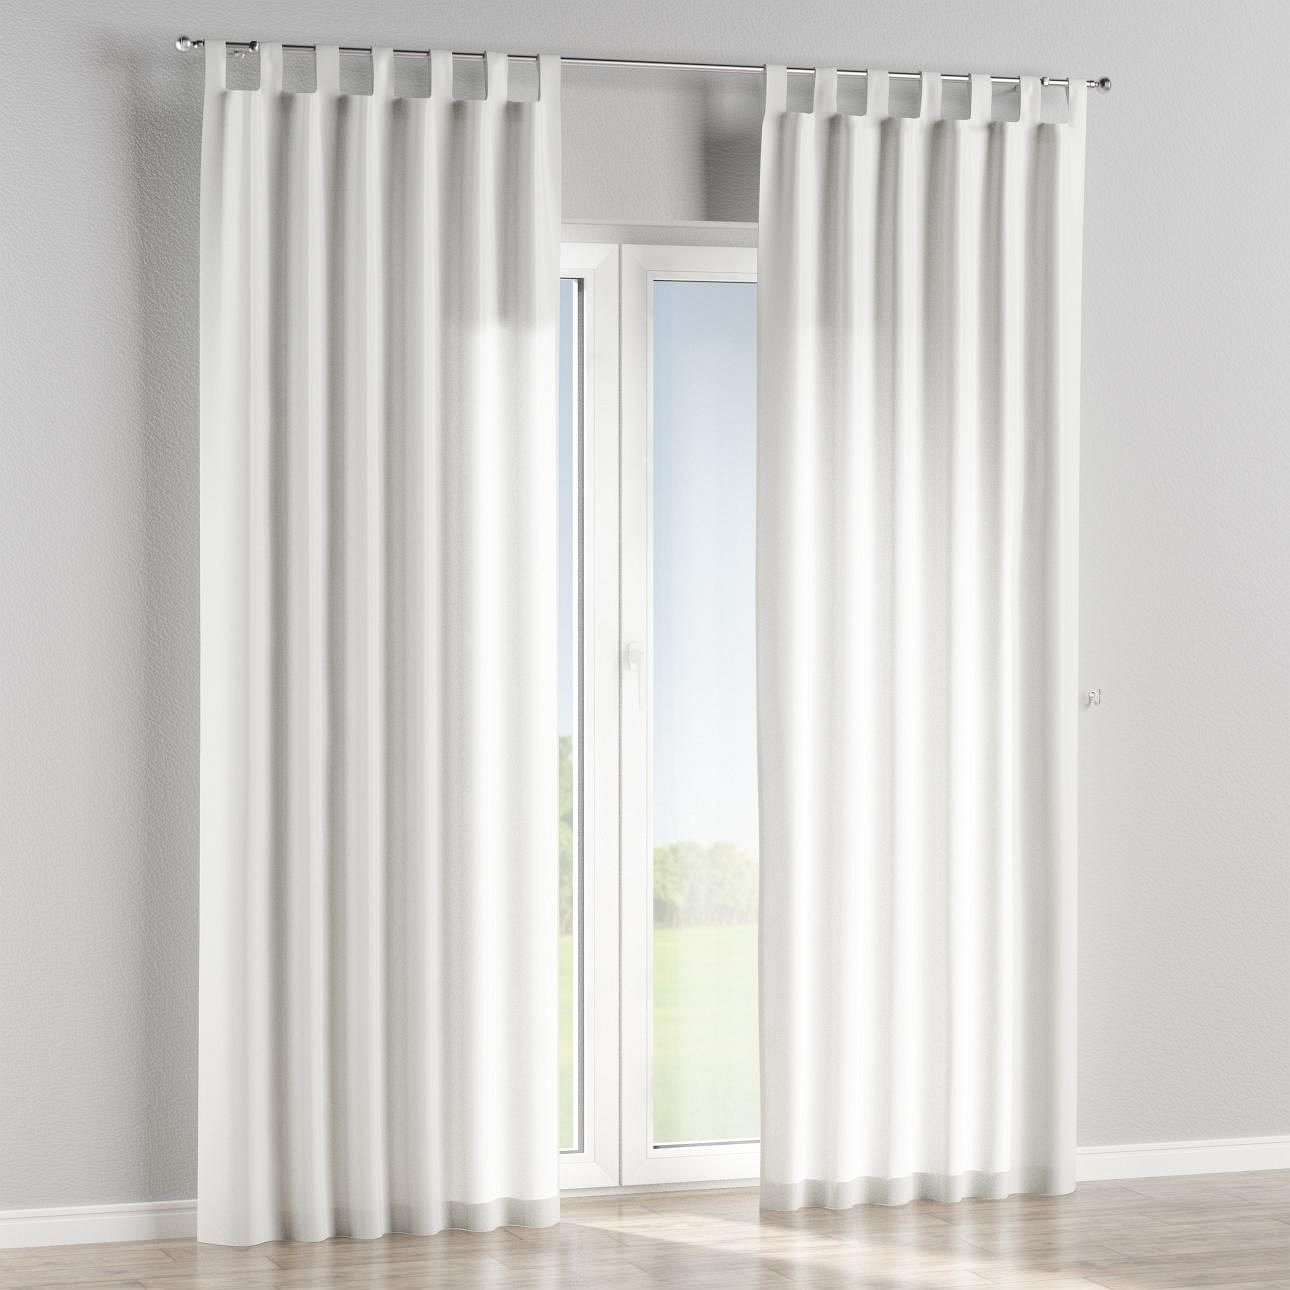 Tab top curtains in collection Norge, fabric: 150-10